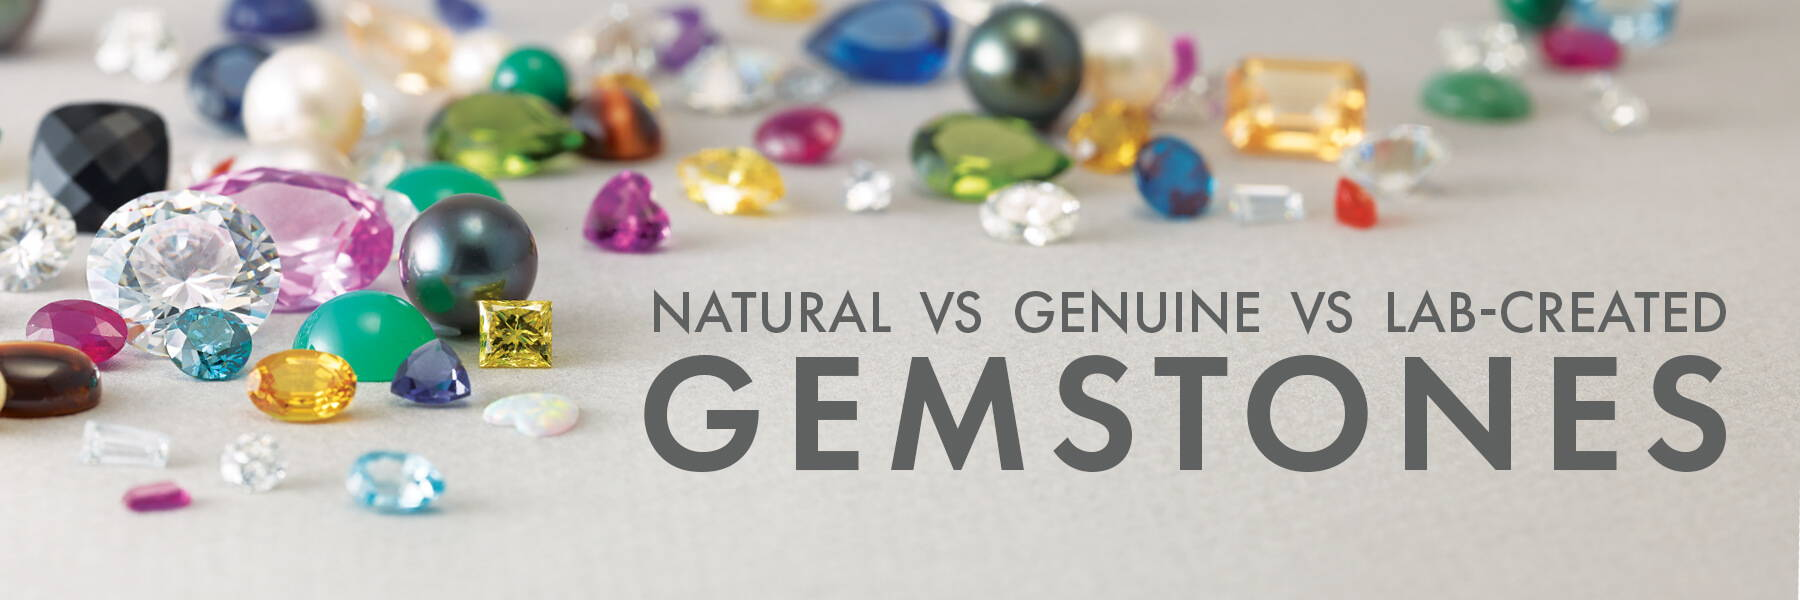 Natural vs Genuine vs Lab-Created Gemstones: What's the Difference?